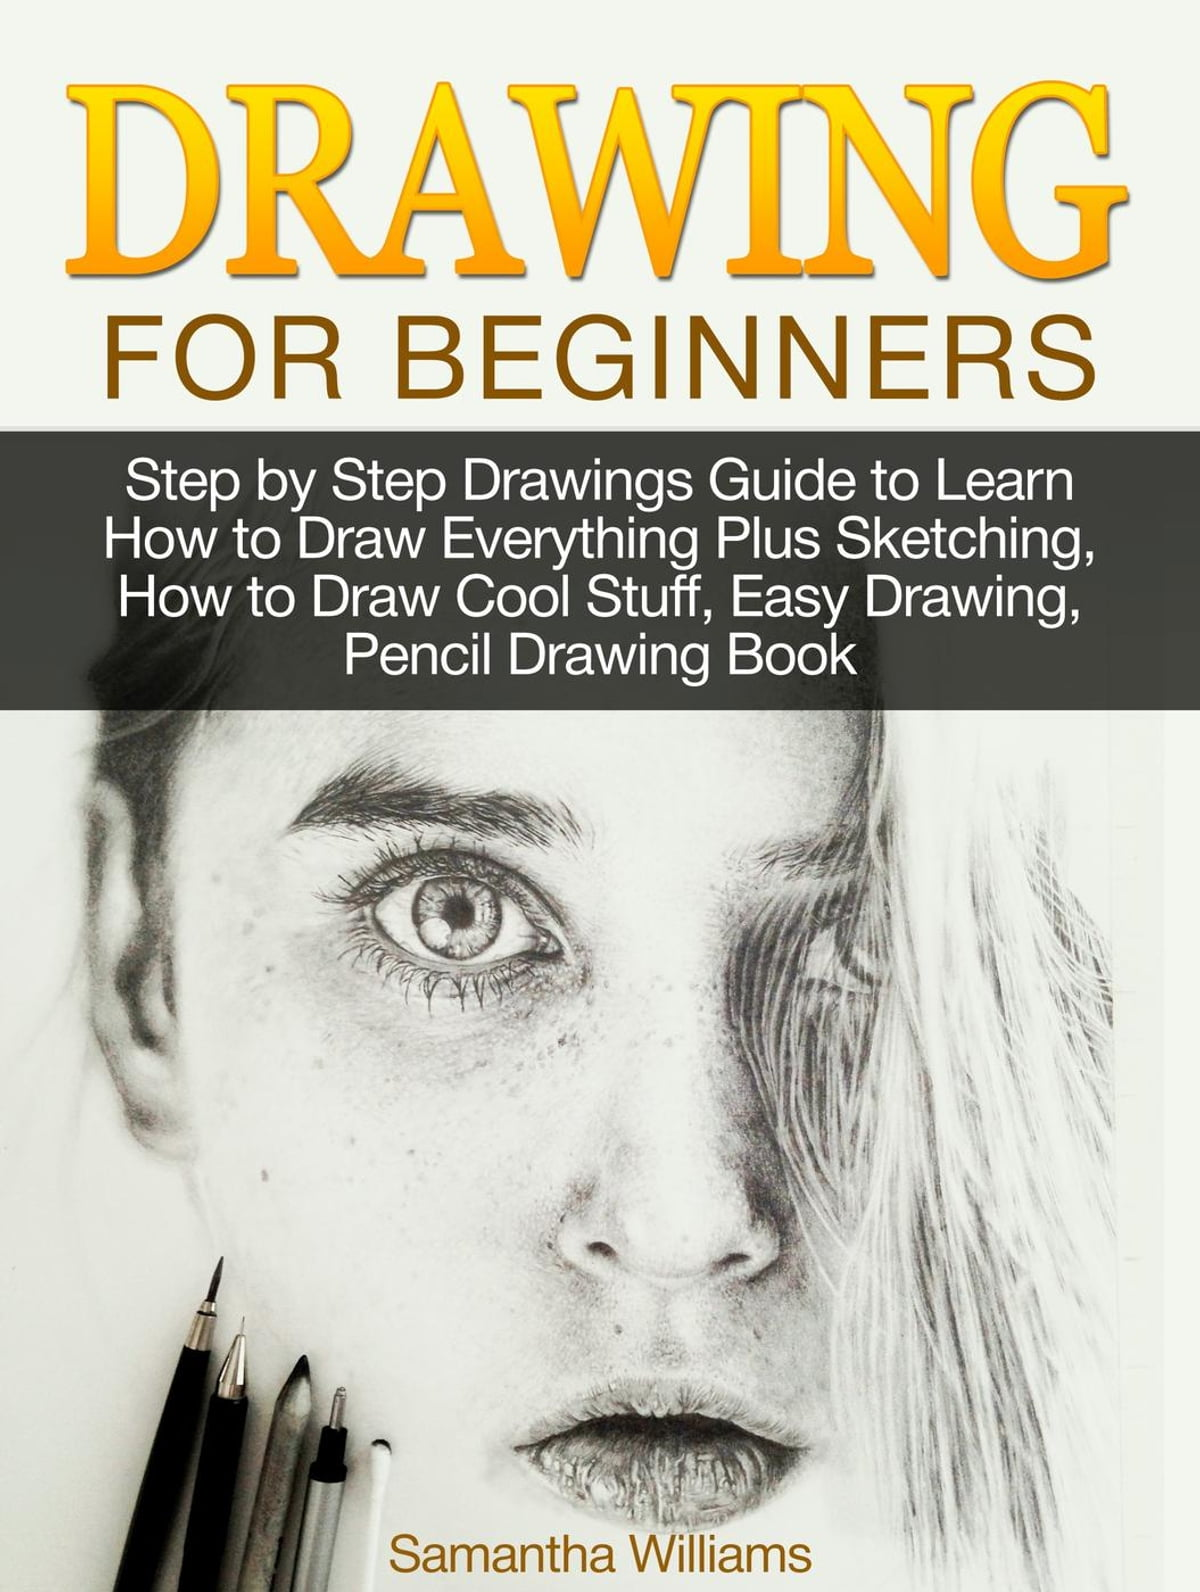 Drawing for beginners step by step drawings guide to learn how to draw everything plus sketching how to draw cool stuff easy drawing pencil drawing book